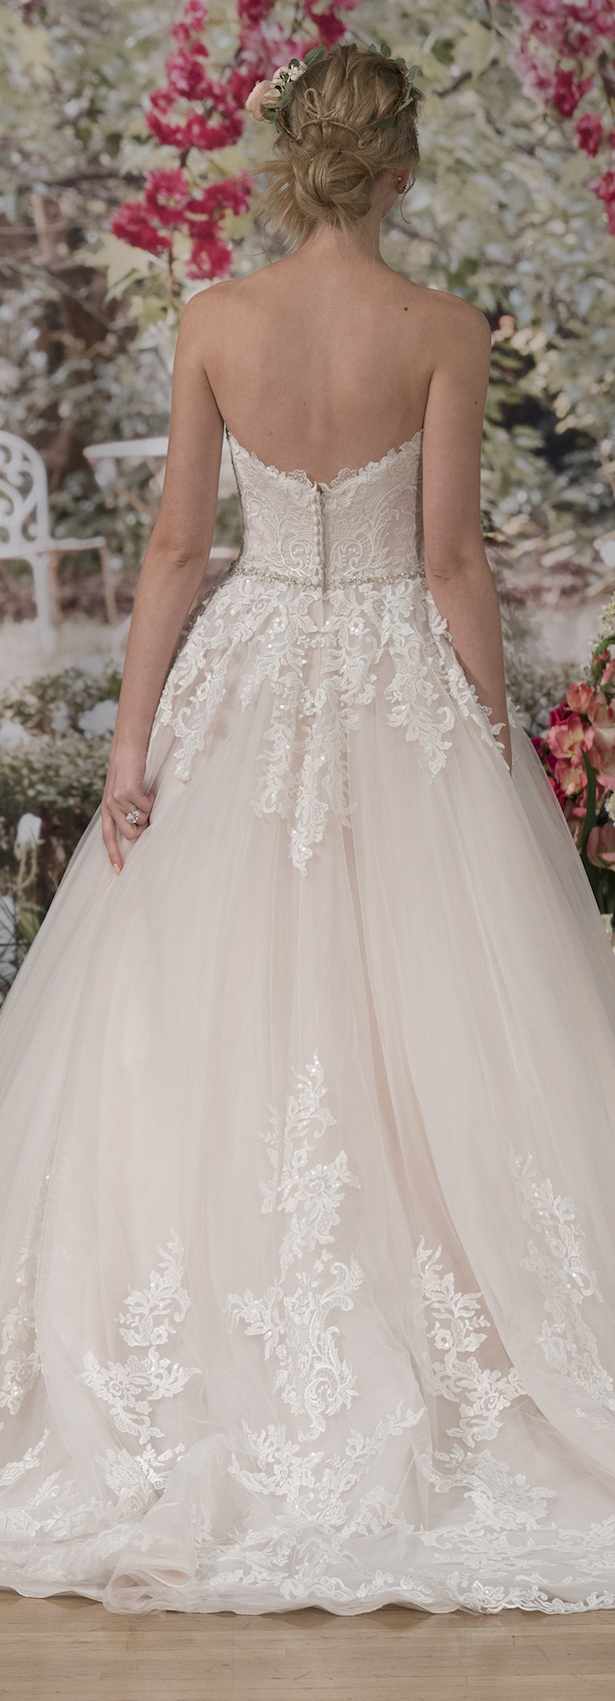 Wedding Dress by Maggie Sottero Fall 2017 NYBFW Runway Show